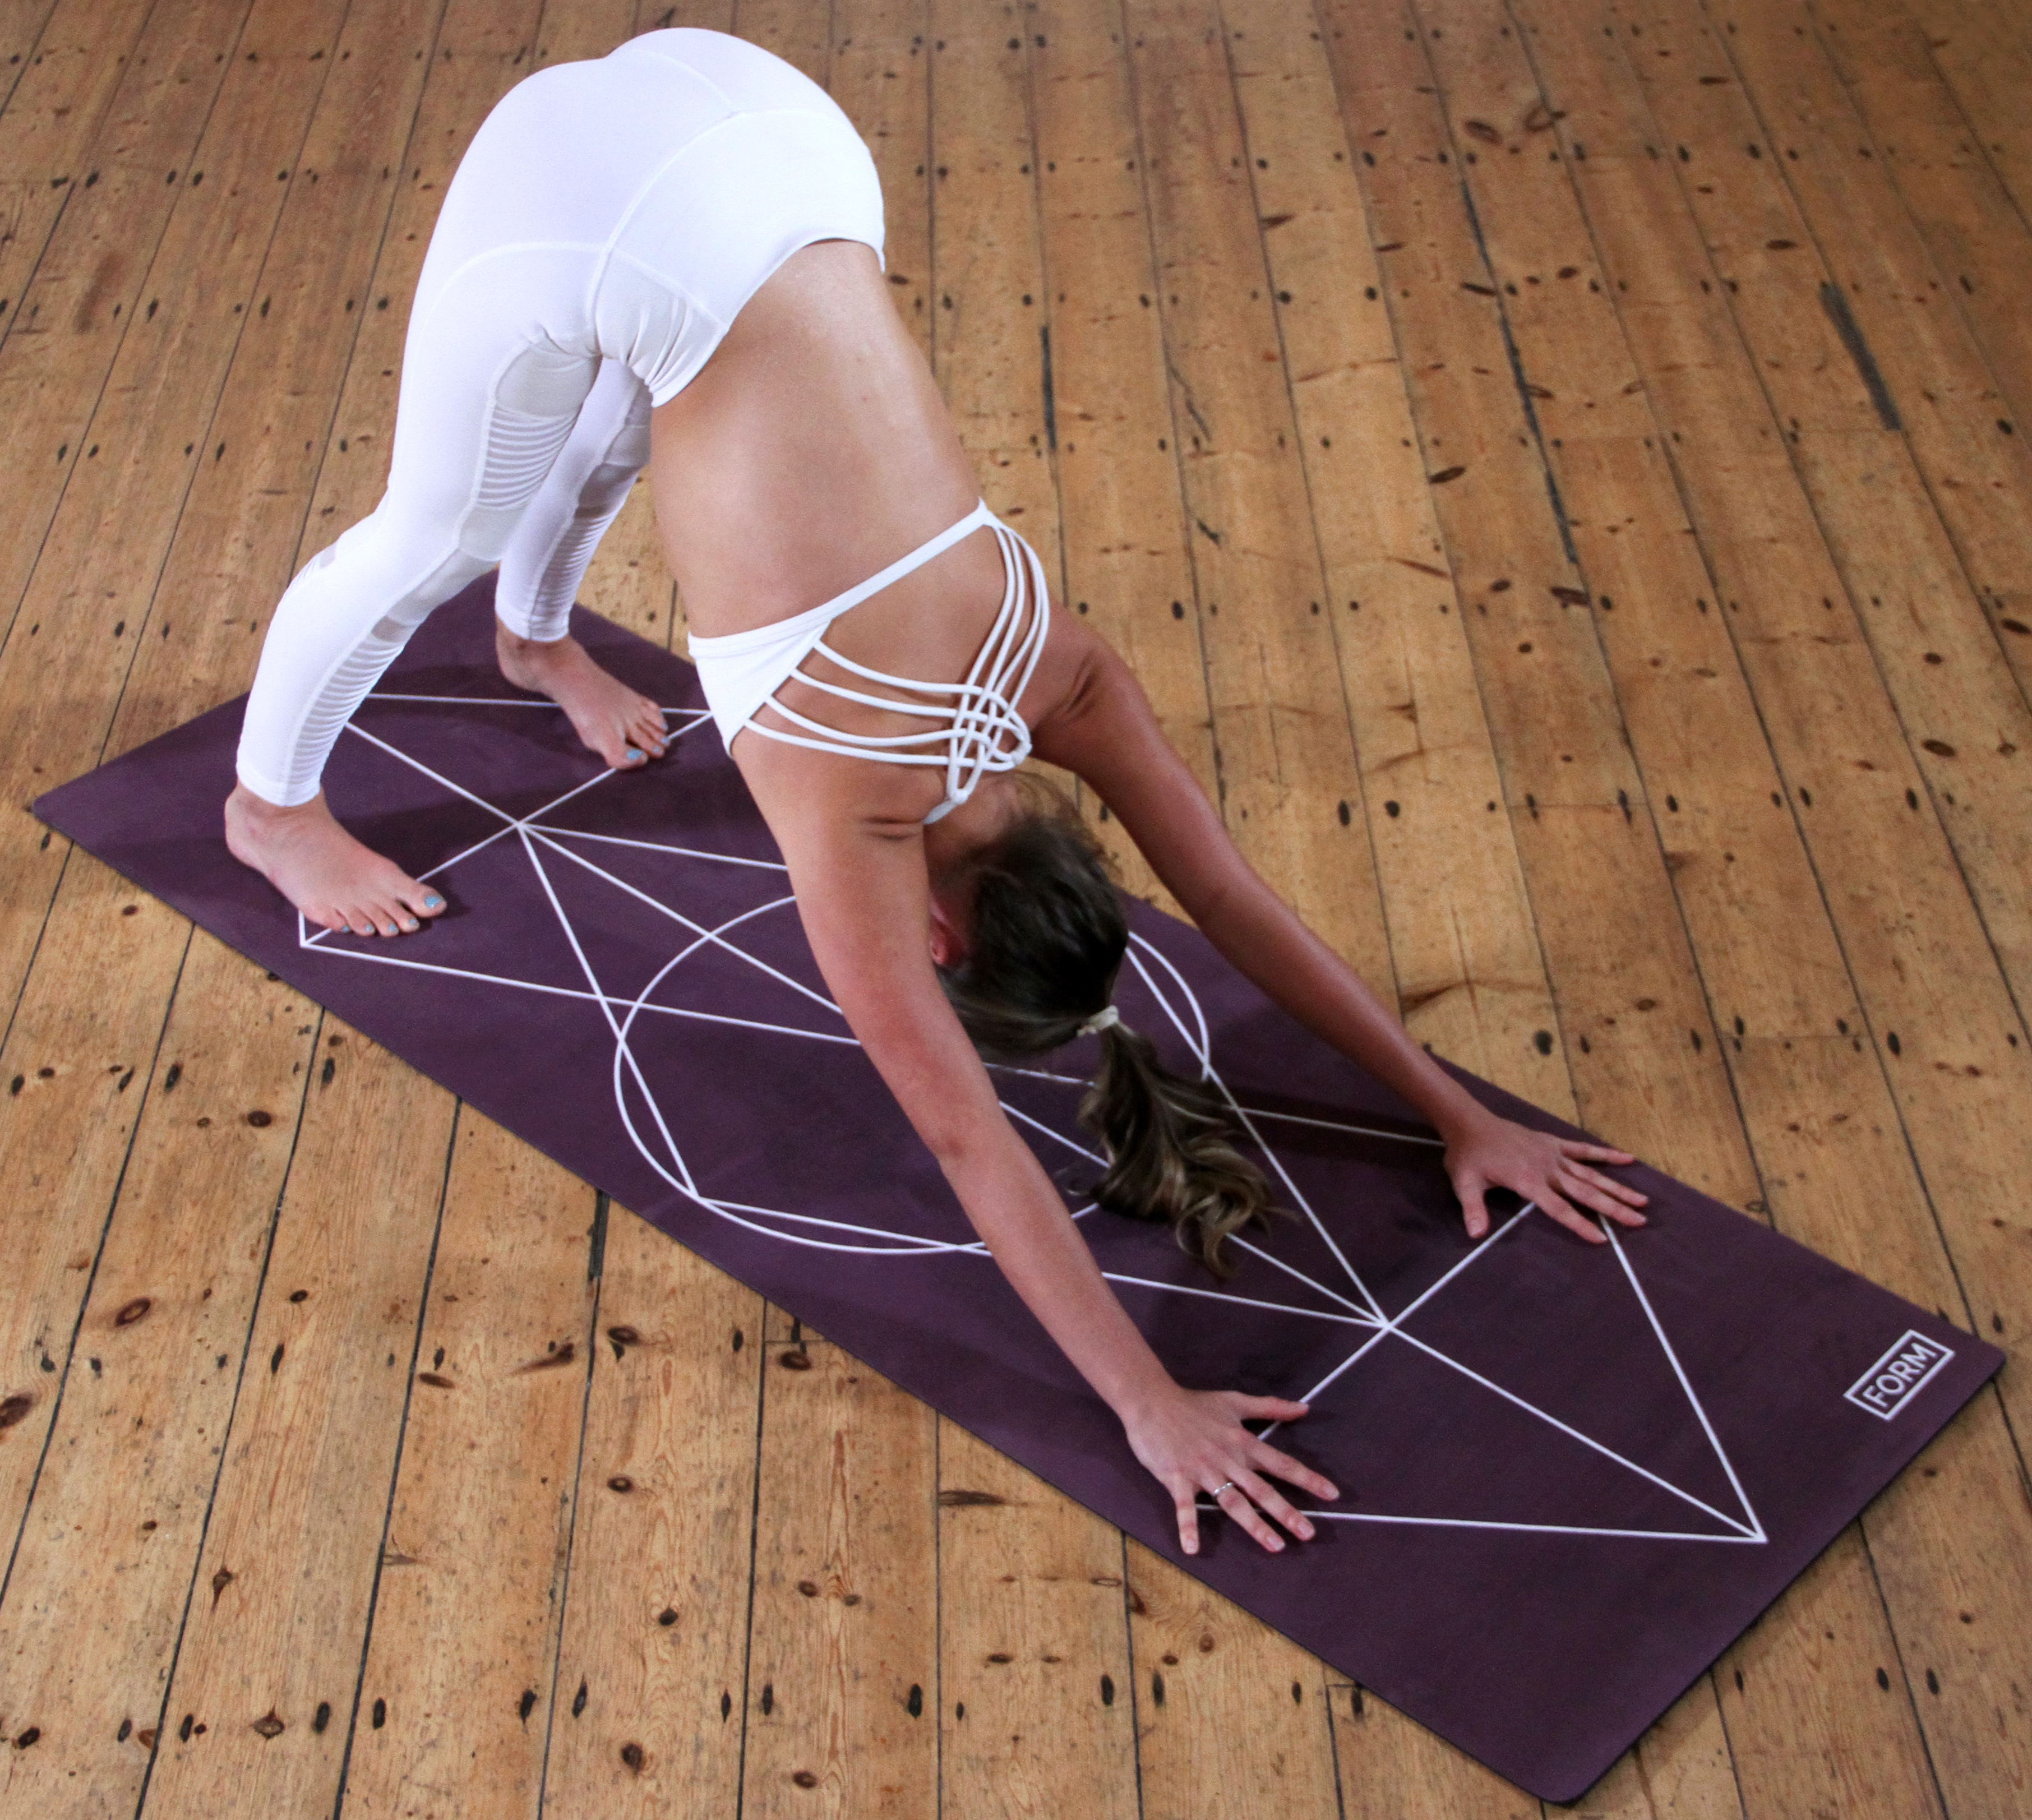 How to choose the Best Hot Yoga Mat